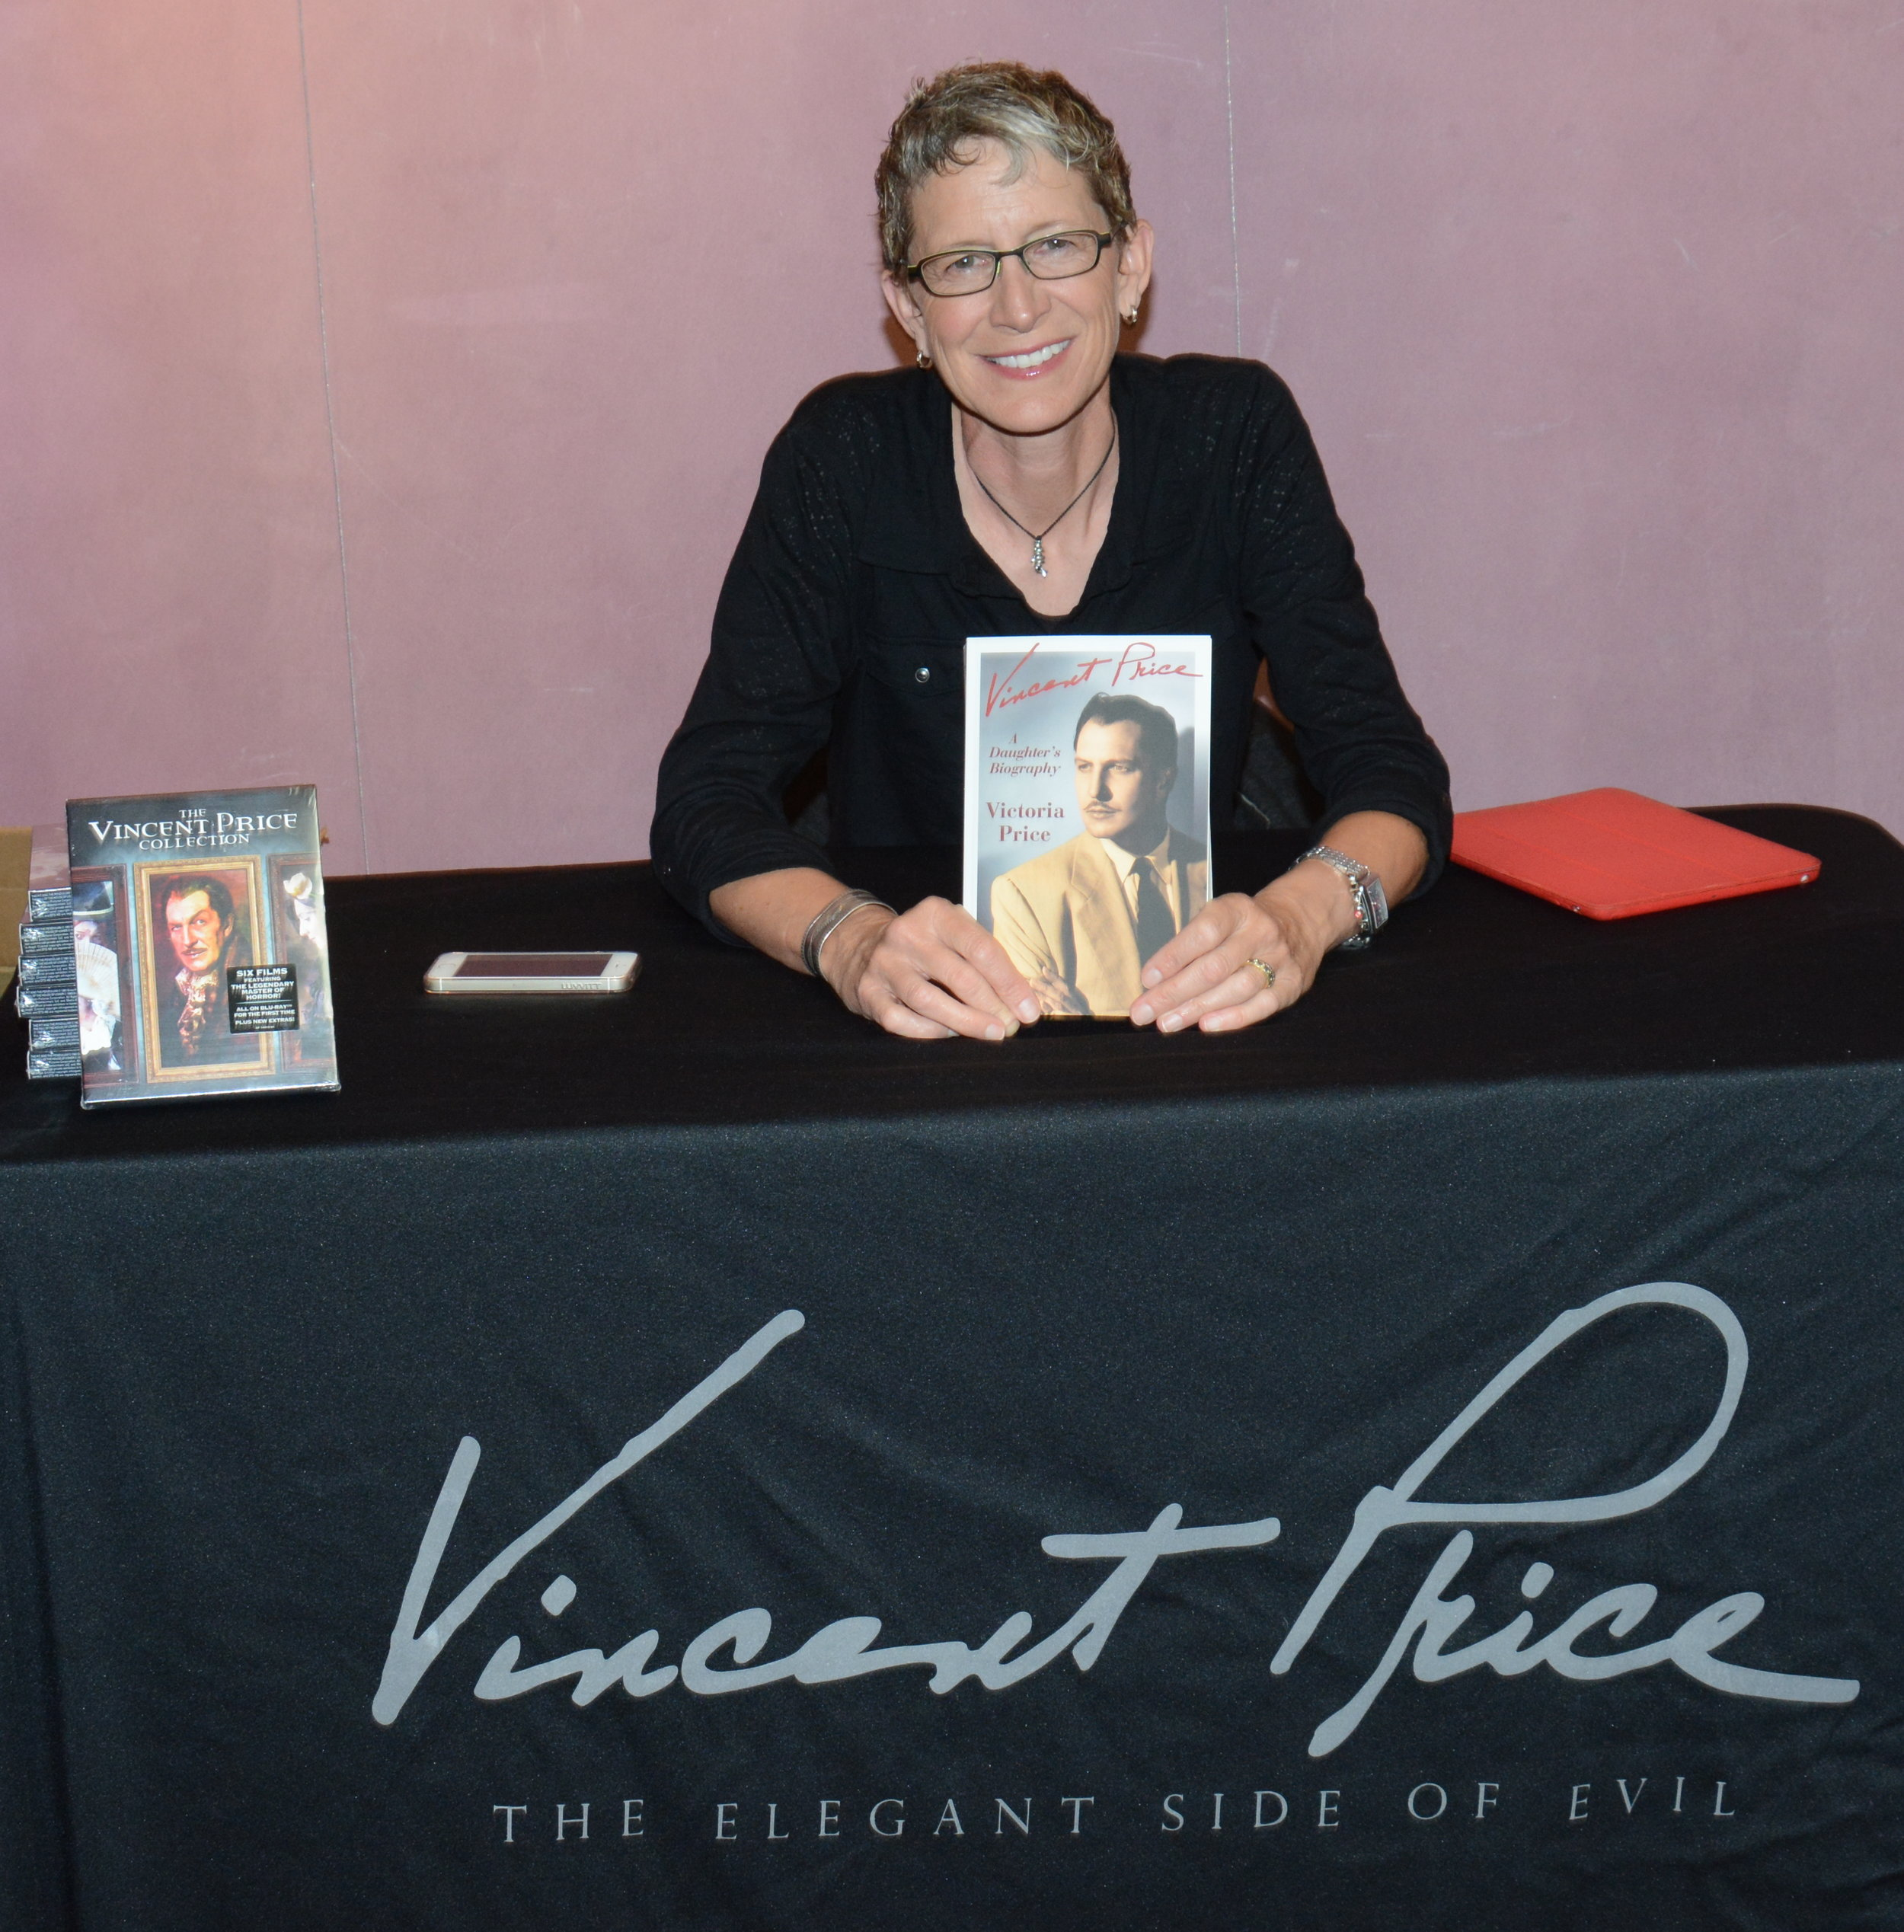 Vincent Price: A Daughter's Biography - Available on Amazon and Barnes & Noble & IndeBound as well as on vincentprice.com